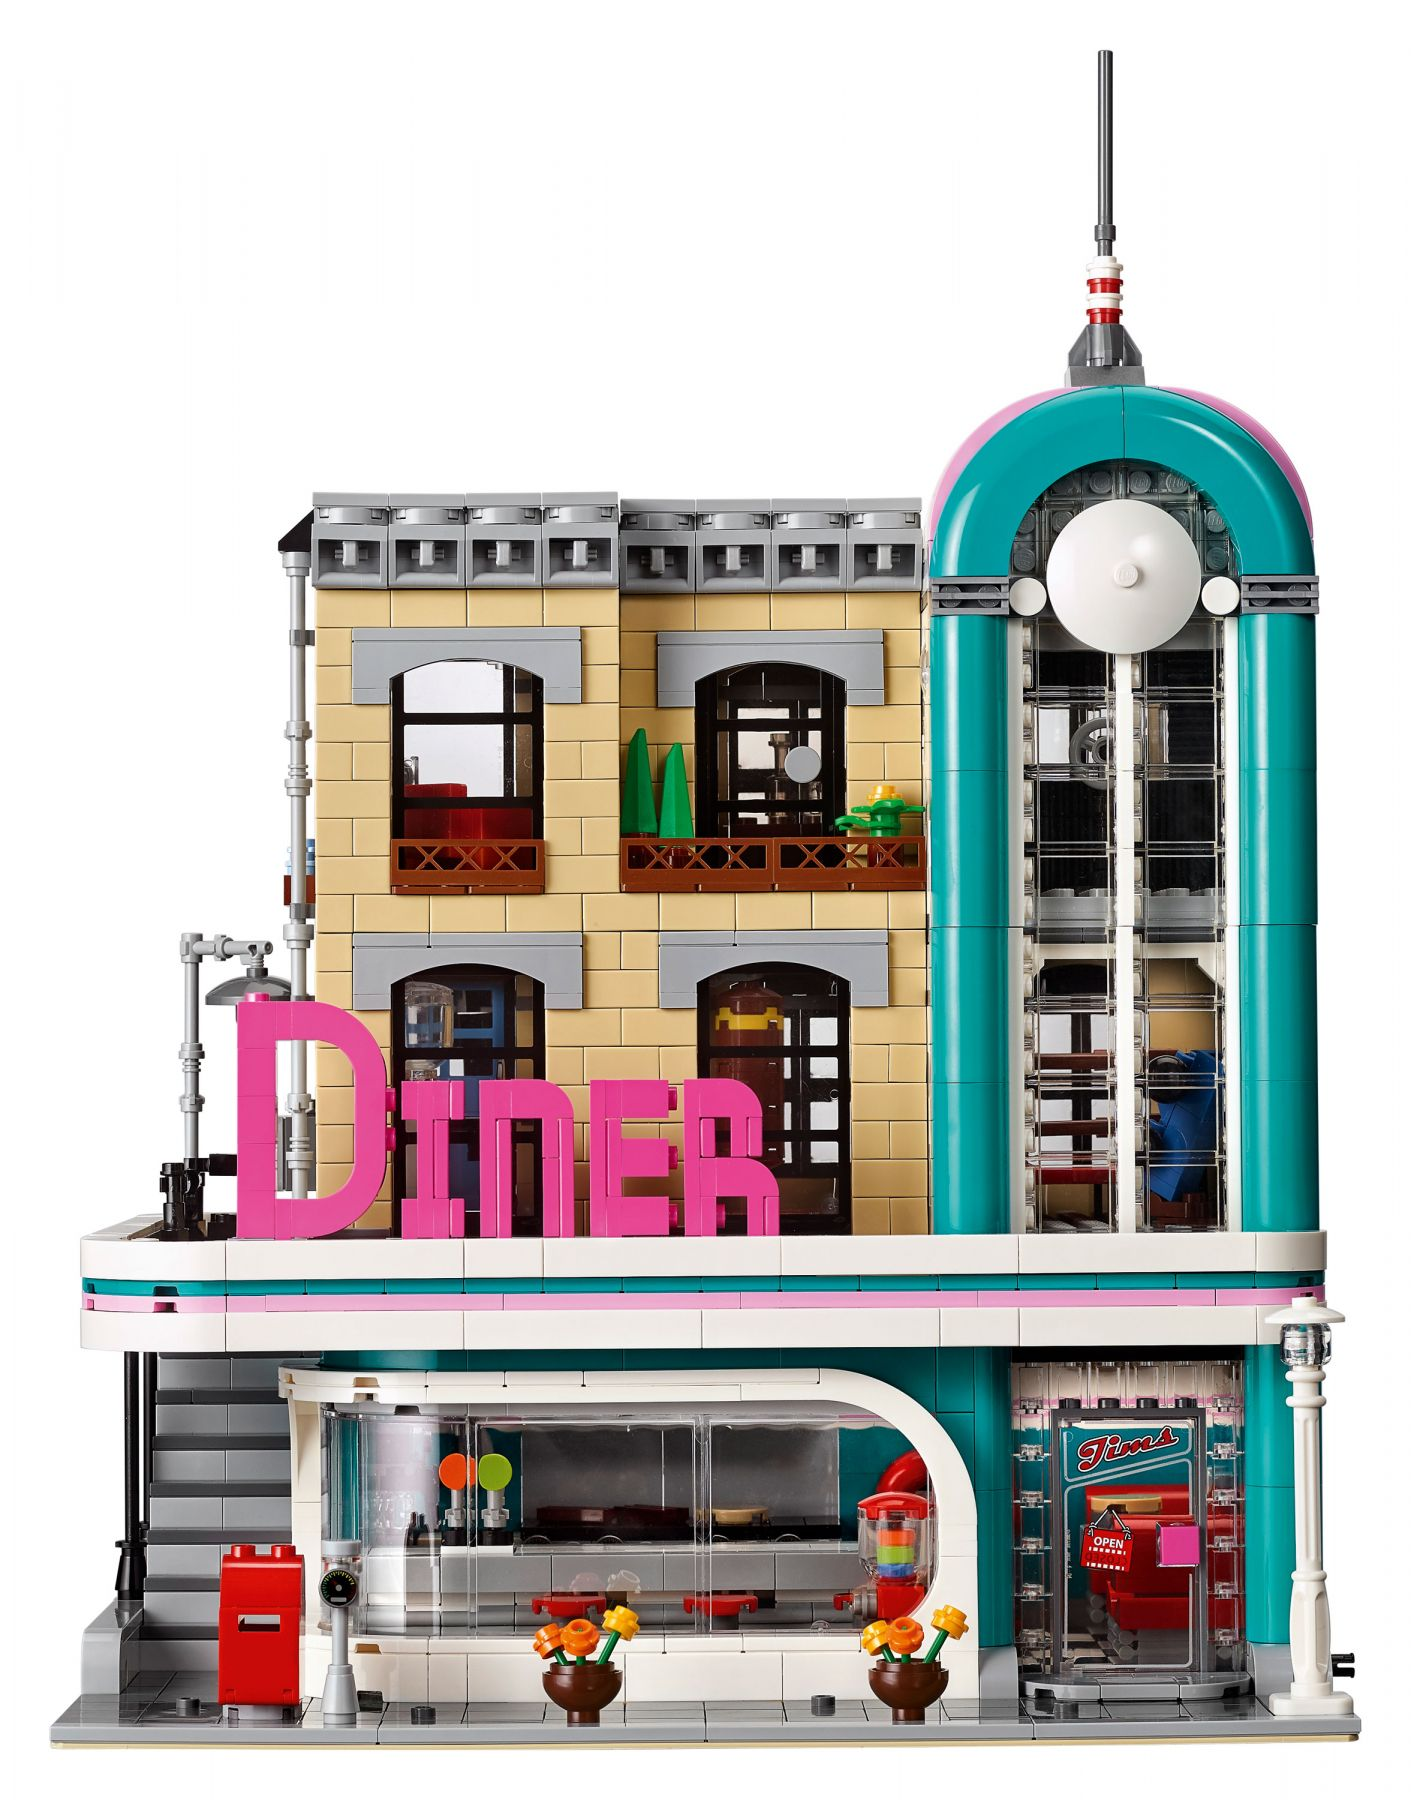 LEGO Advanced Models 10260 Amerikanisches Diner LEGO_10260_Downtown-Diner_Front.jpg